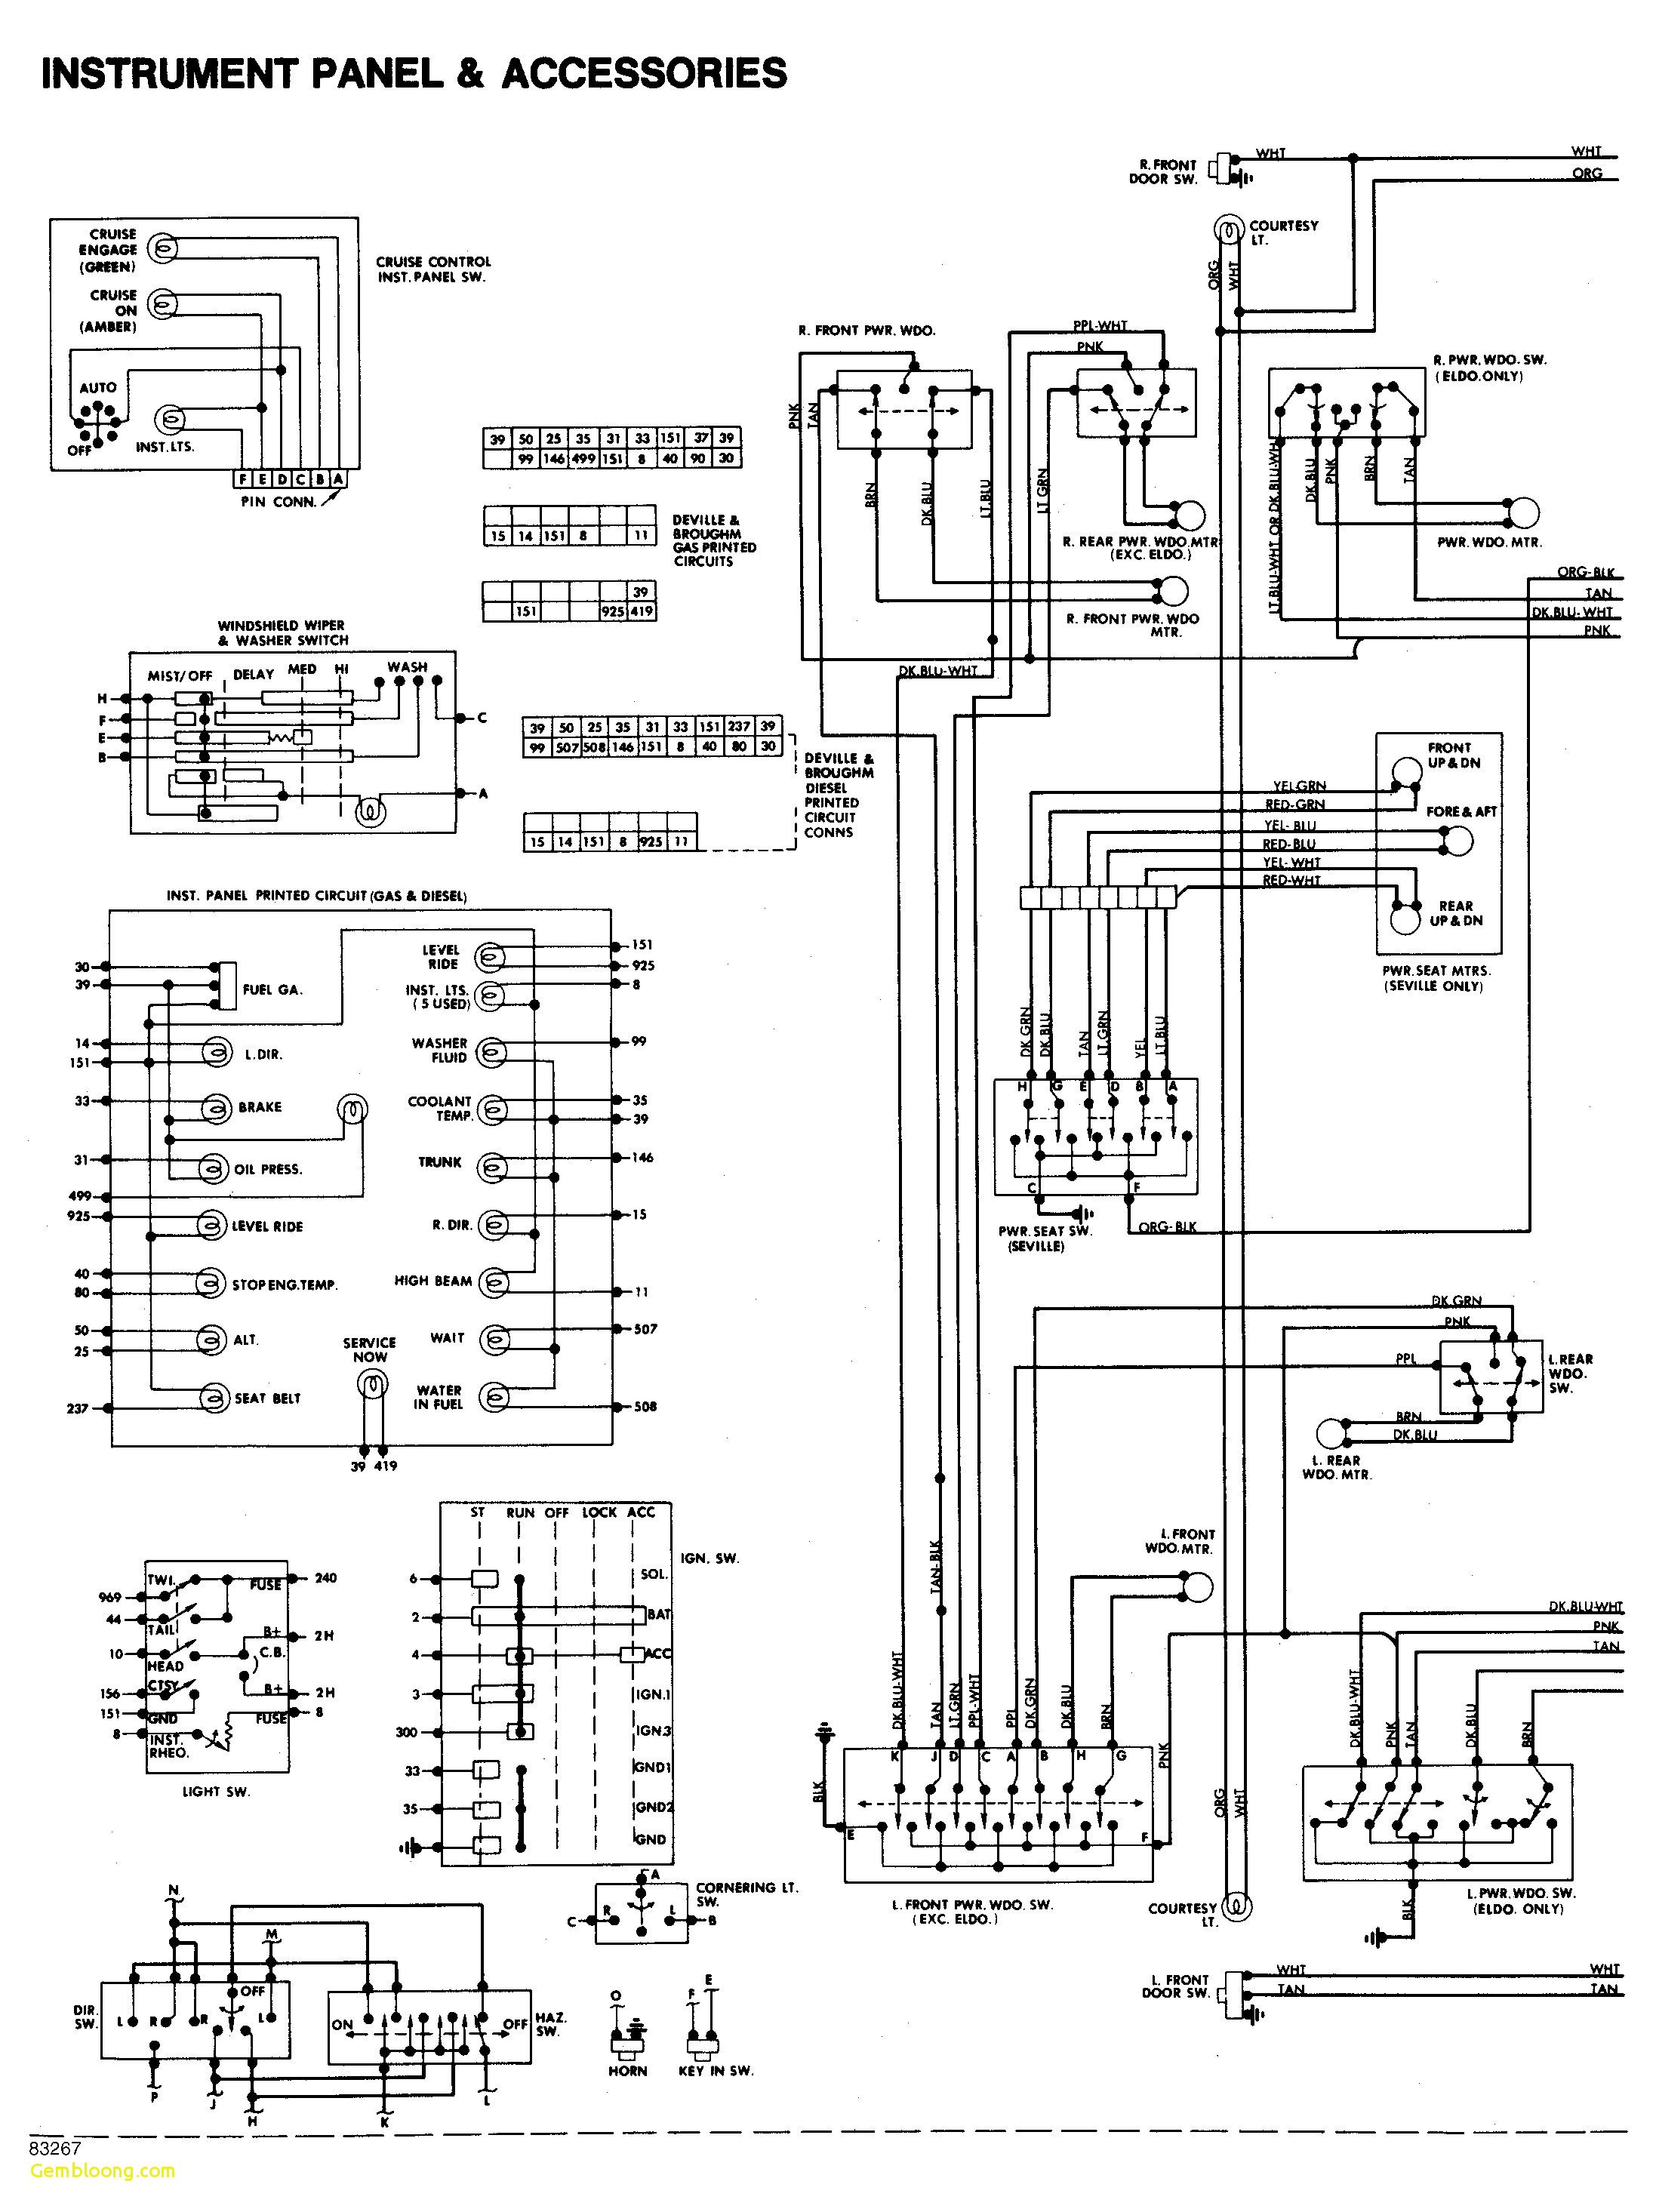 22 Stunning Free Vehicle Wiring Diagrams Https Bacamajalah Com 22 Stunning Free Vehicle Wiring In 2020 Electrical Wiring Diagram Electrical Diagram Diagram Design